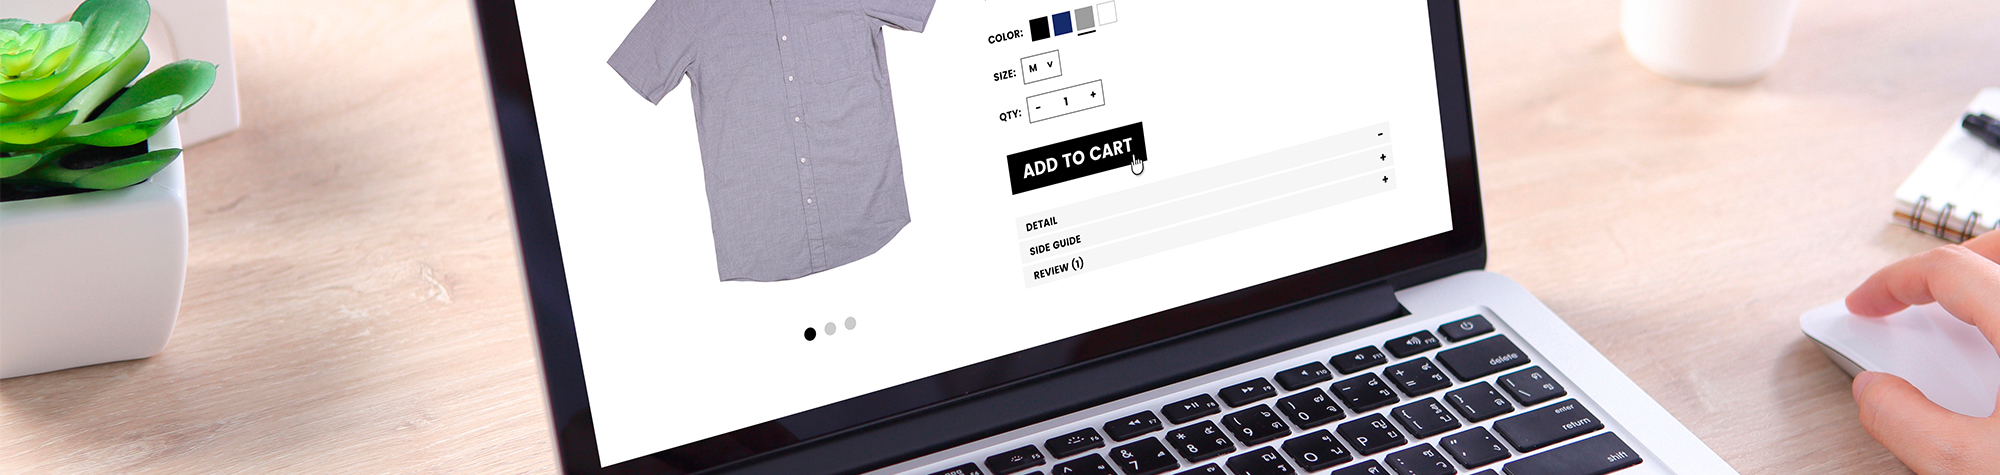 Duplication of contents in an eCommerce